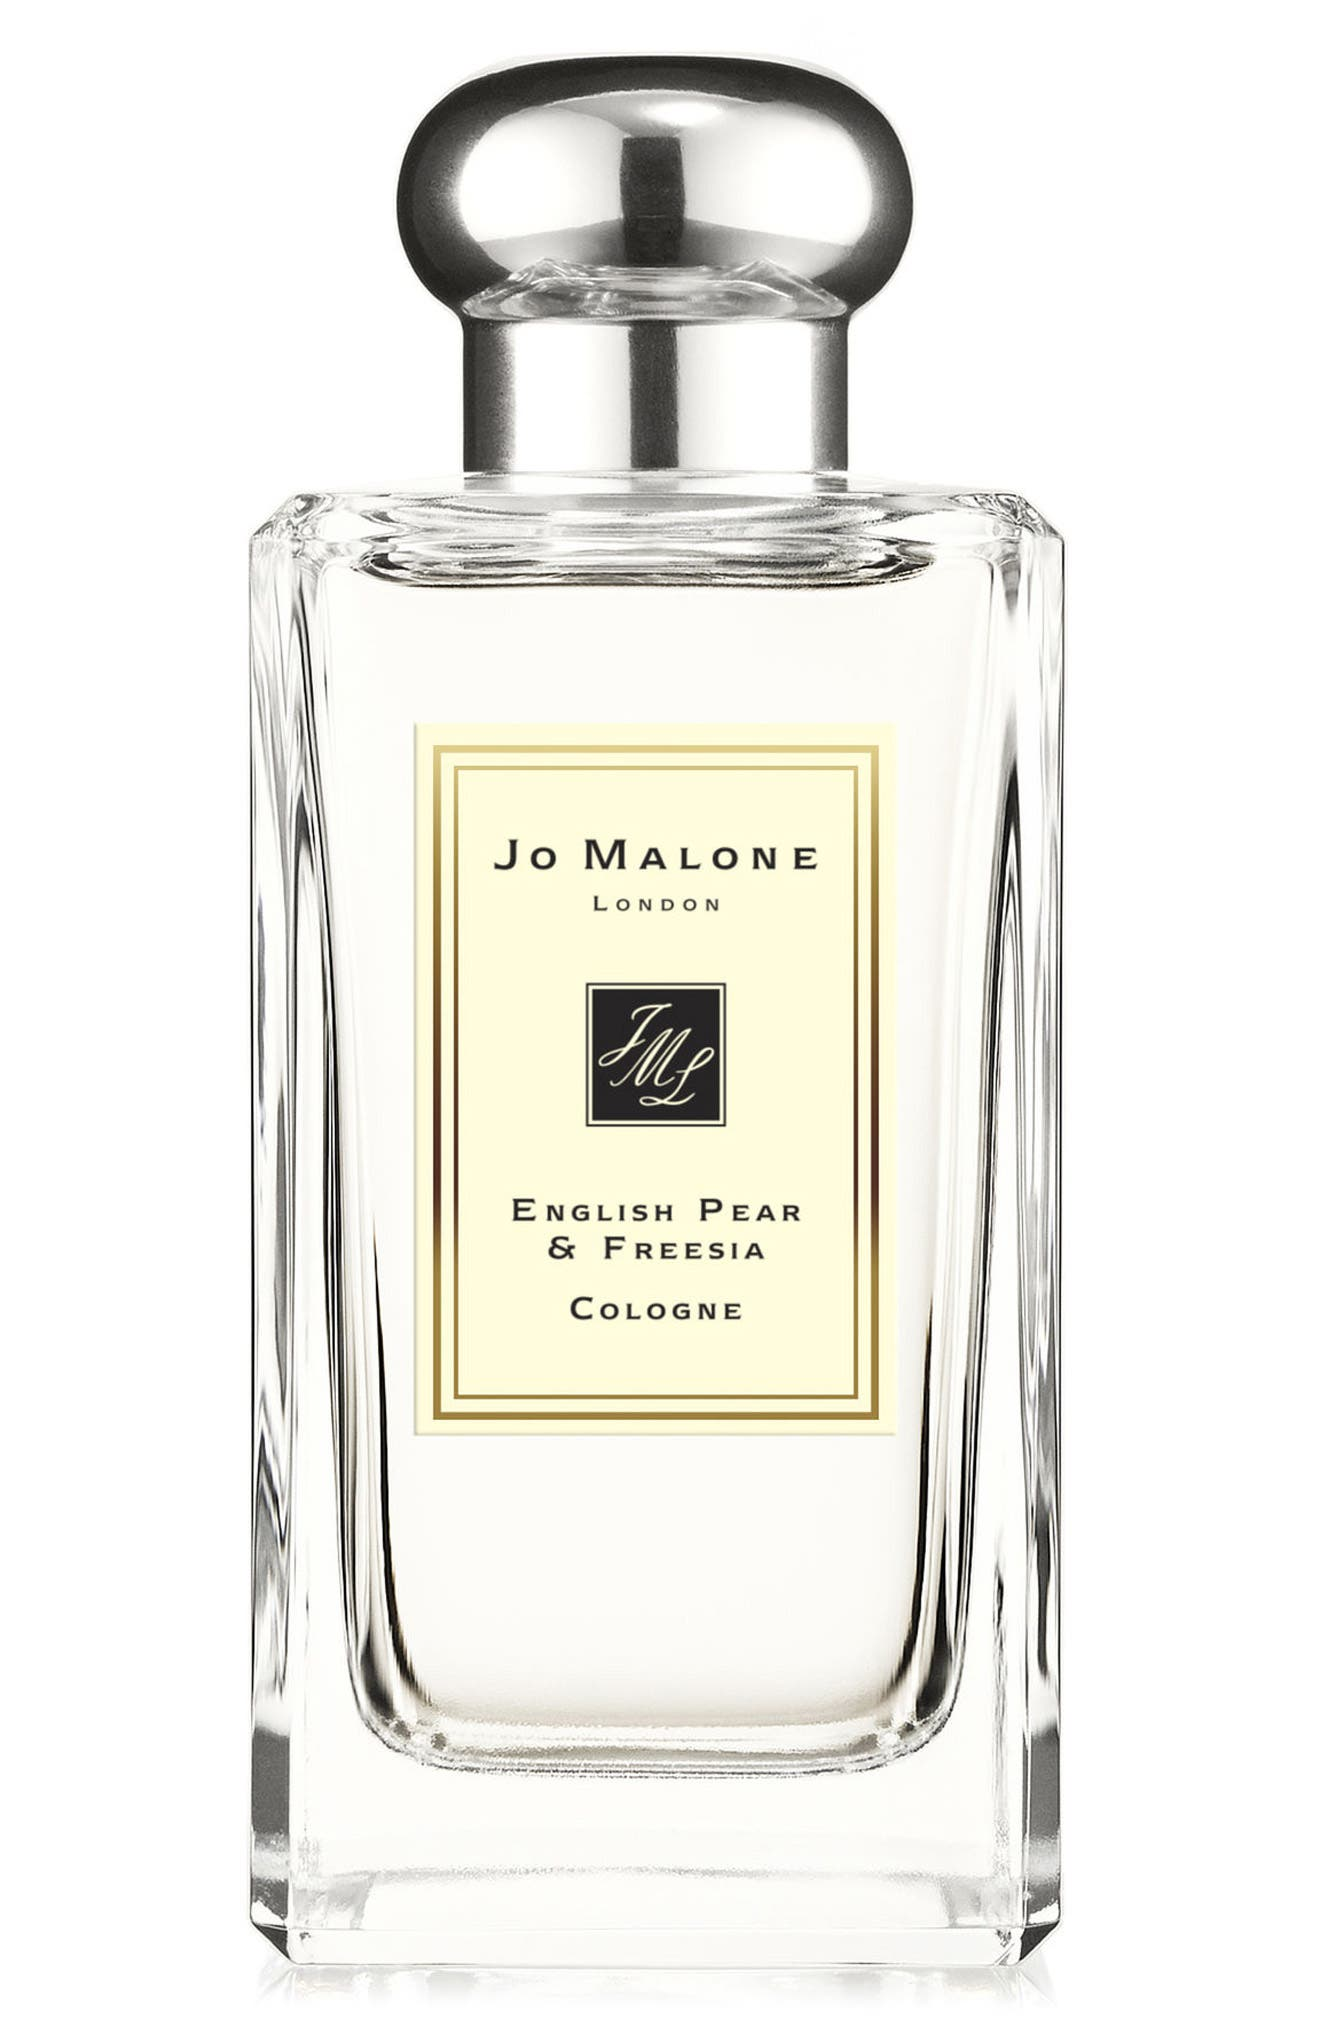 Jo Malone London™ 'English Pear & Freesia' Cologne